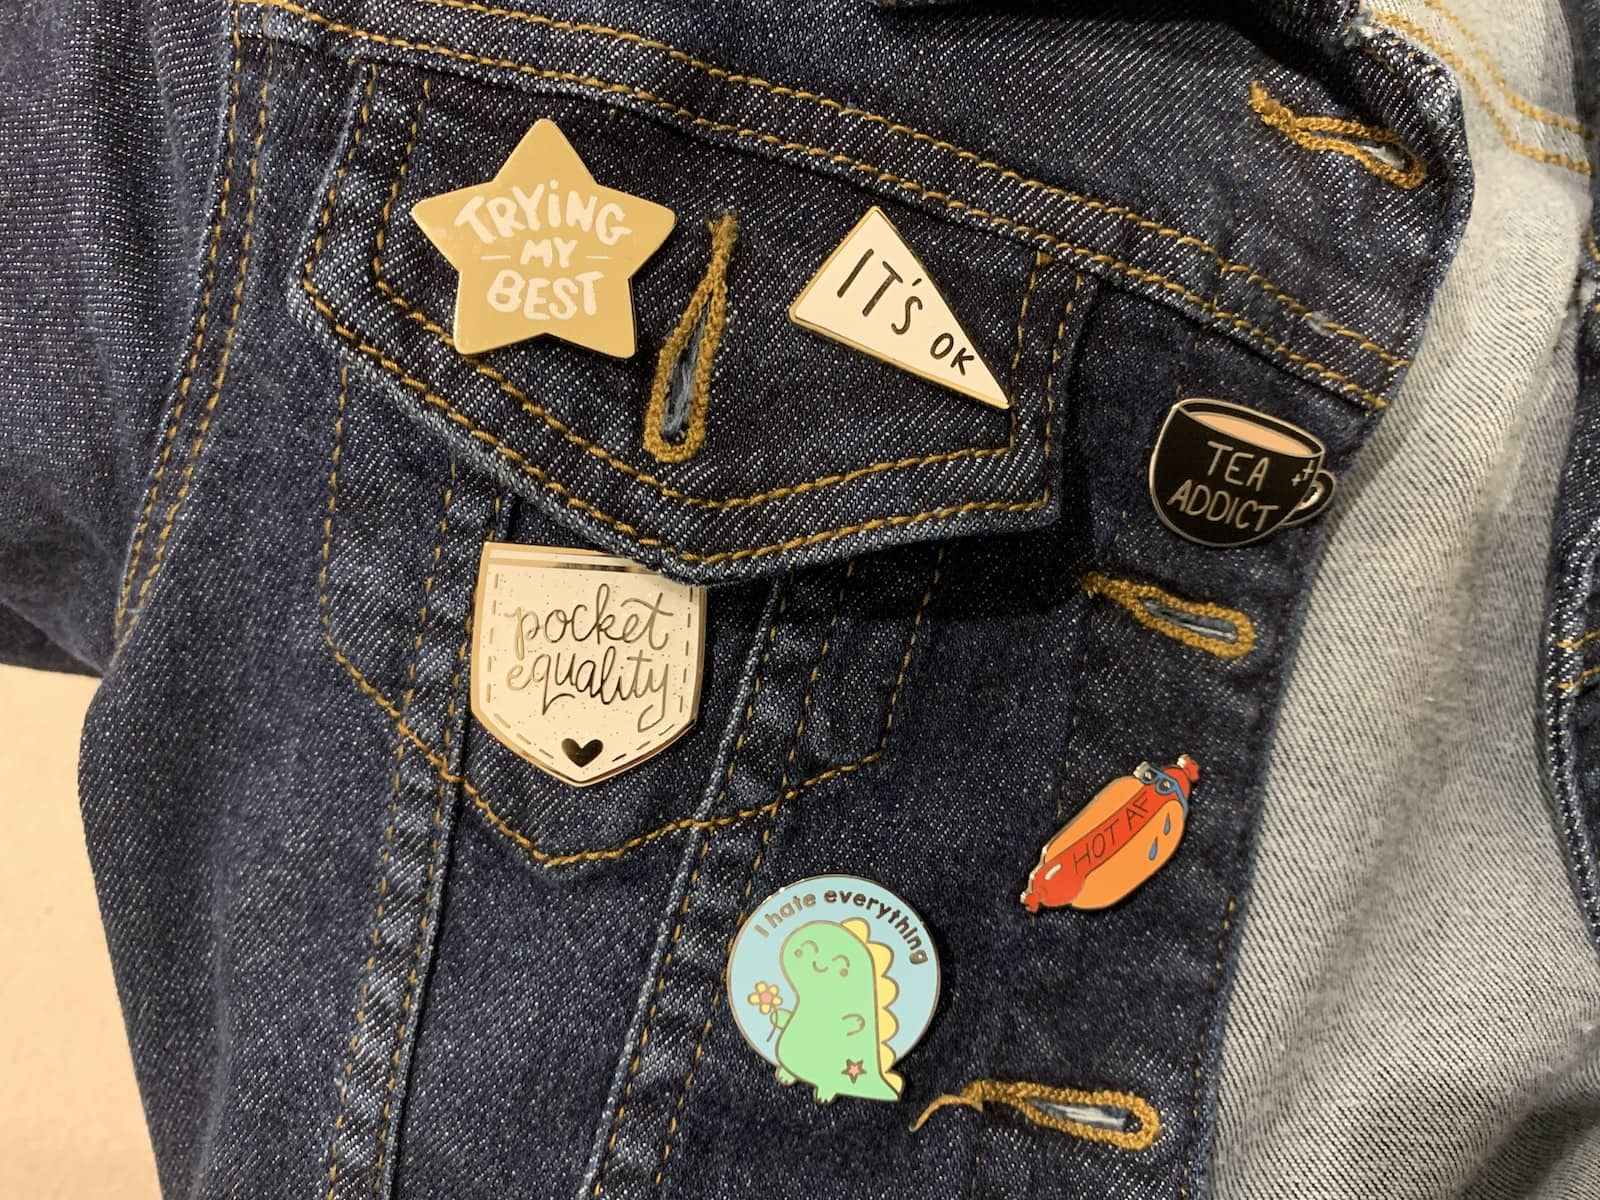 Part of a dark denim jacket accessorised with enamel pins